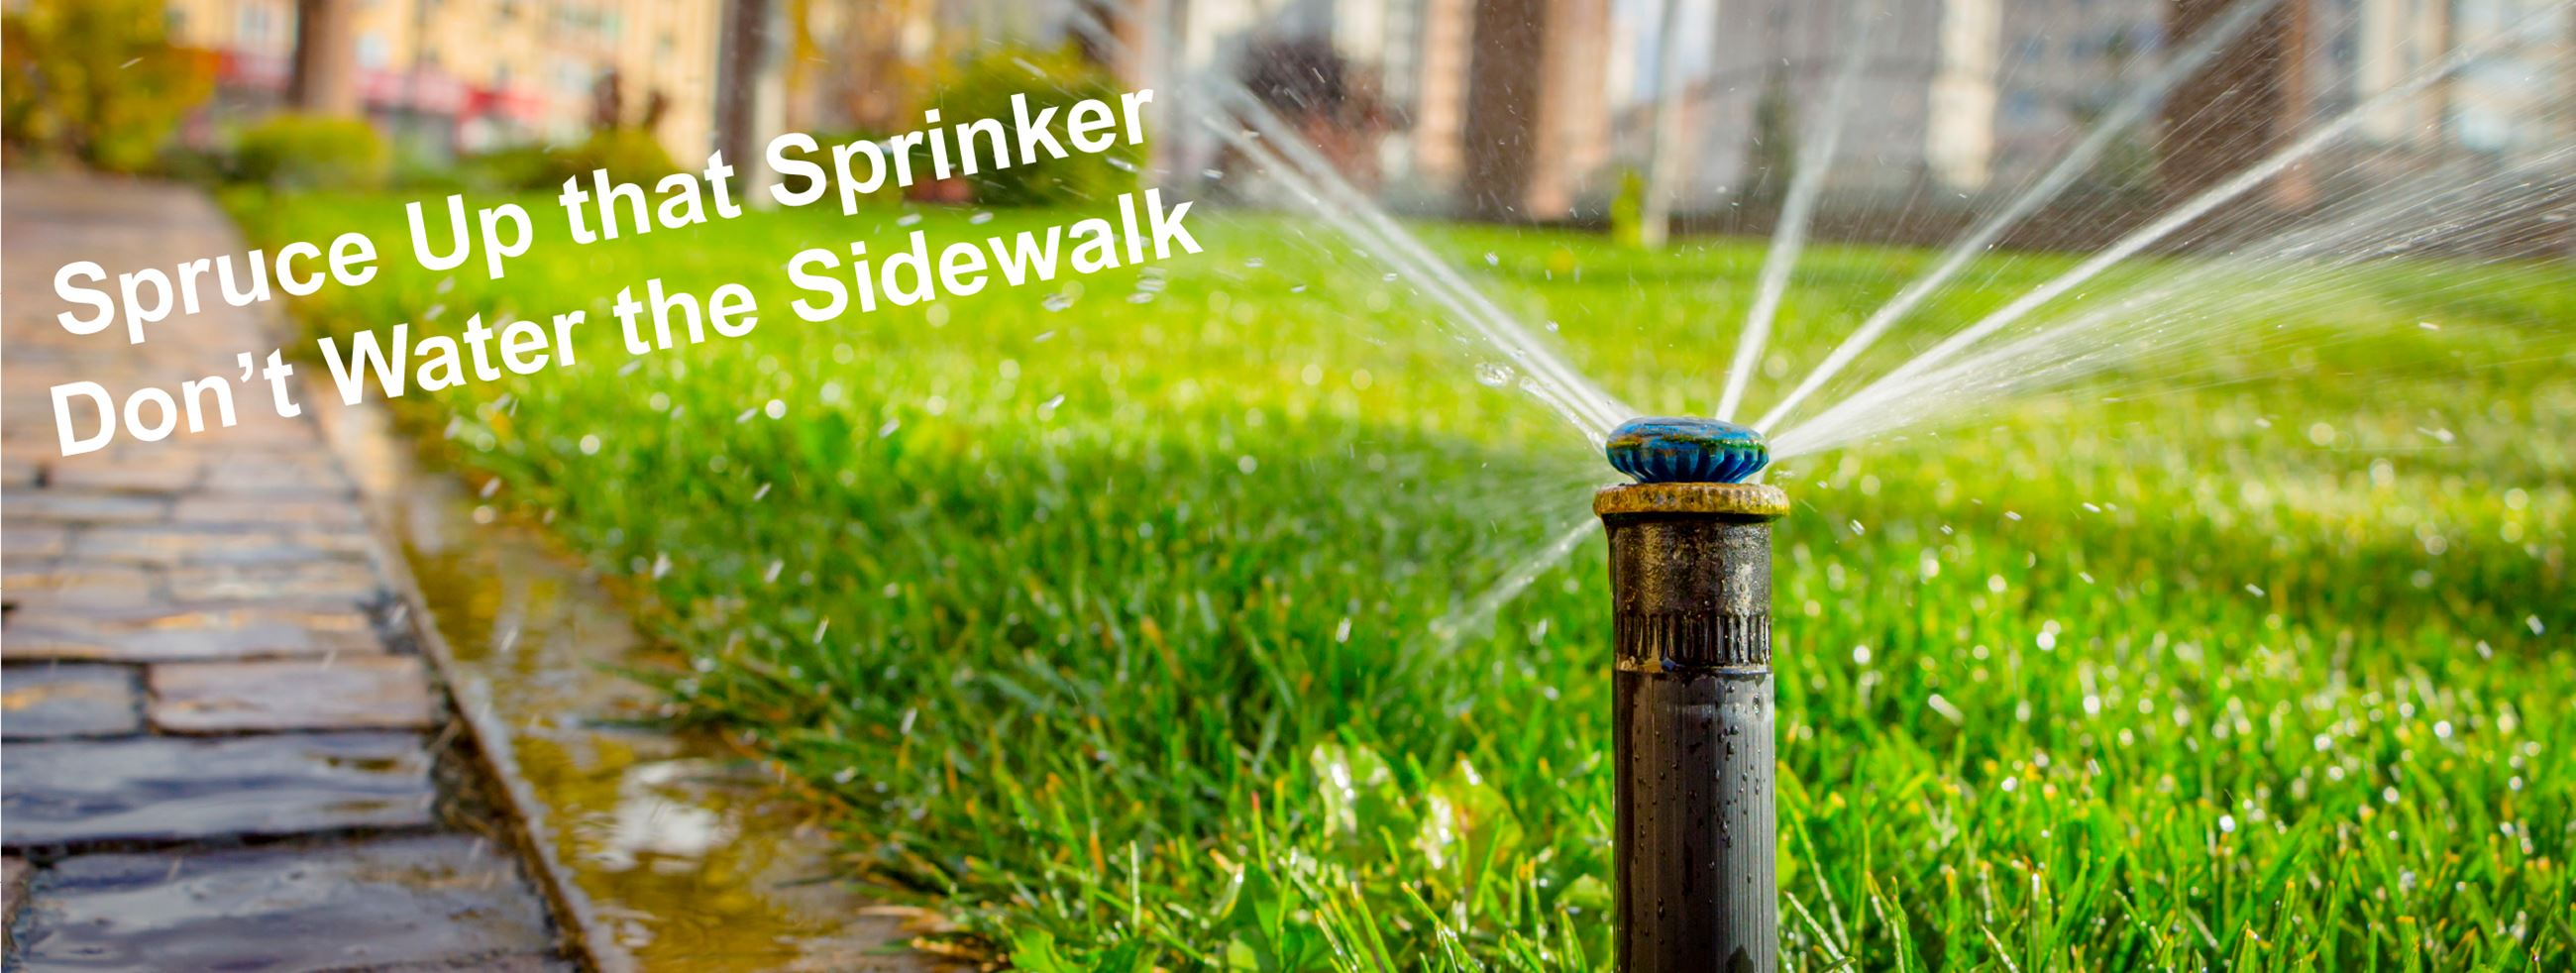 Sprinkler on sidewalk